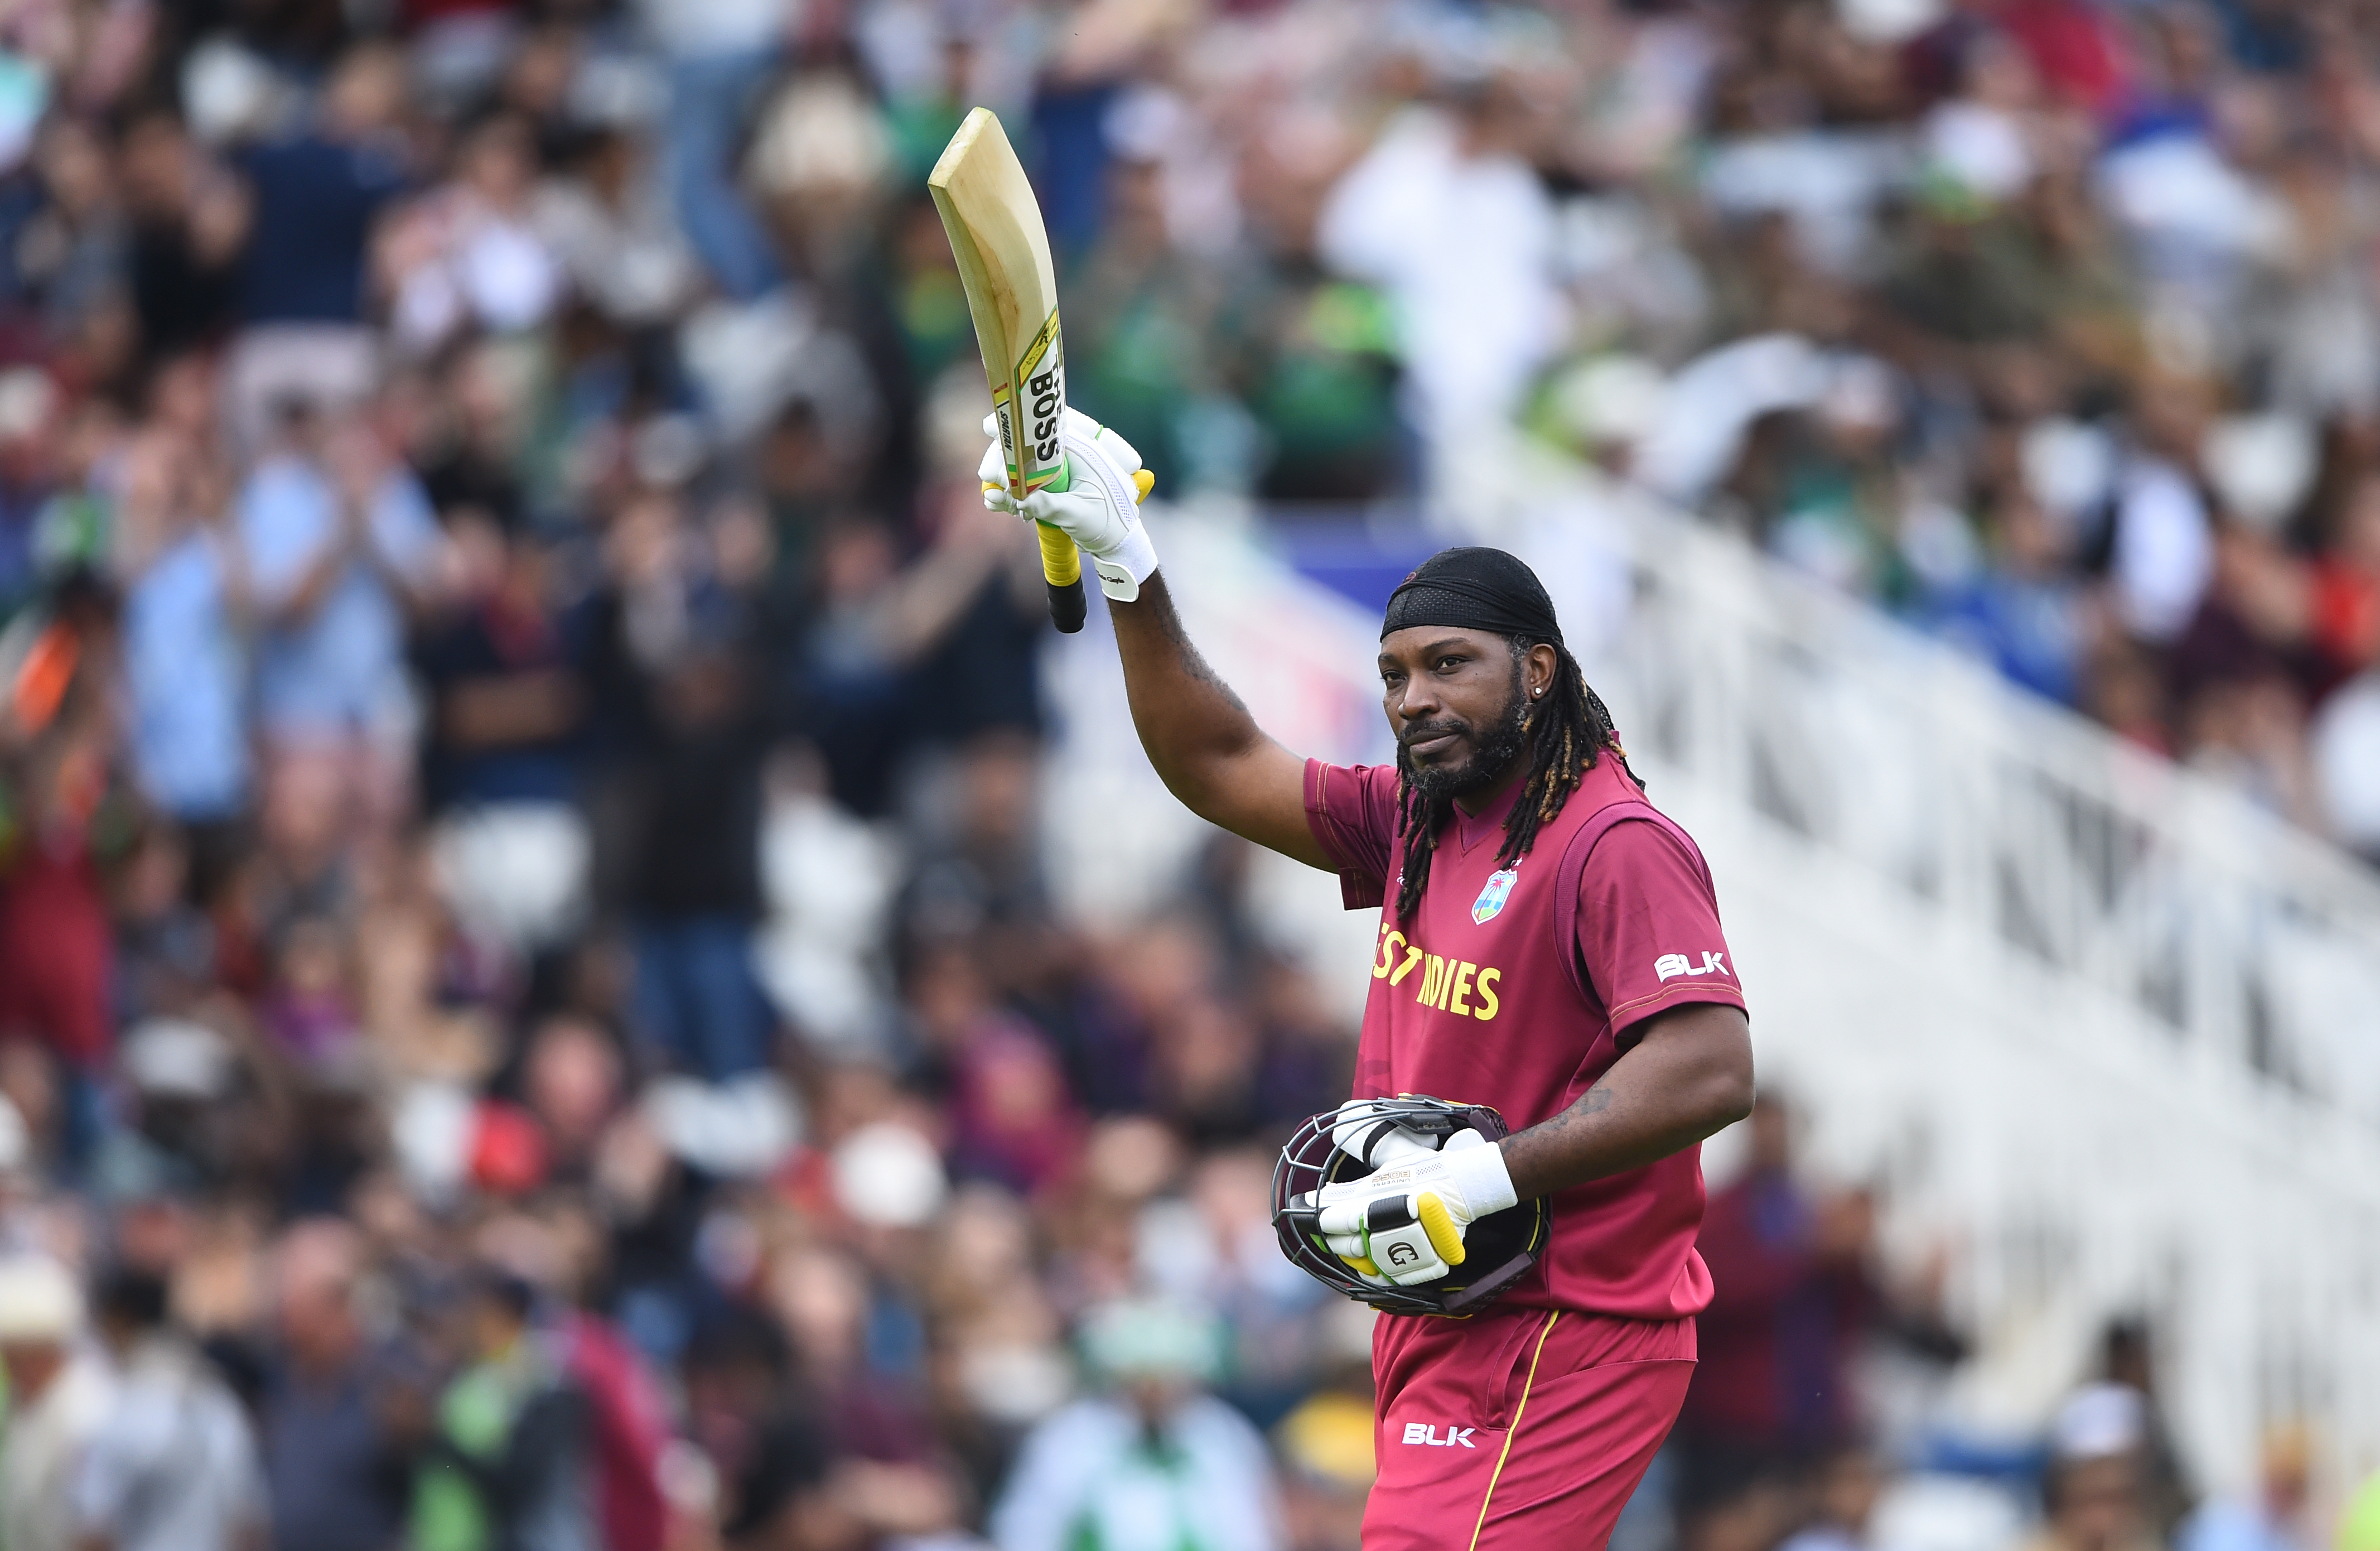 Chris Gayle is a key player for the West Indies (Photo by Nathan Stirk/Getty Images)